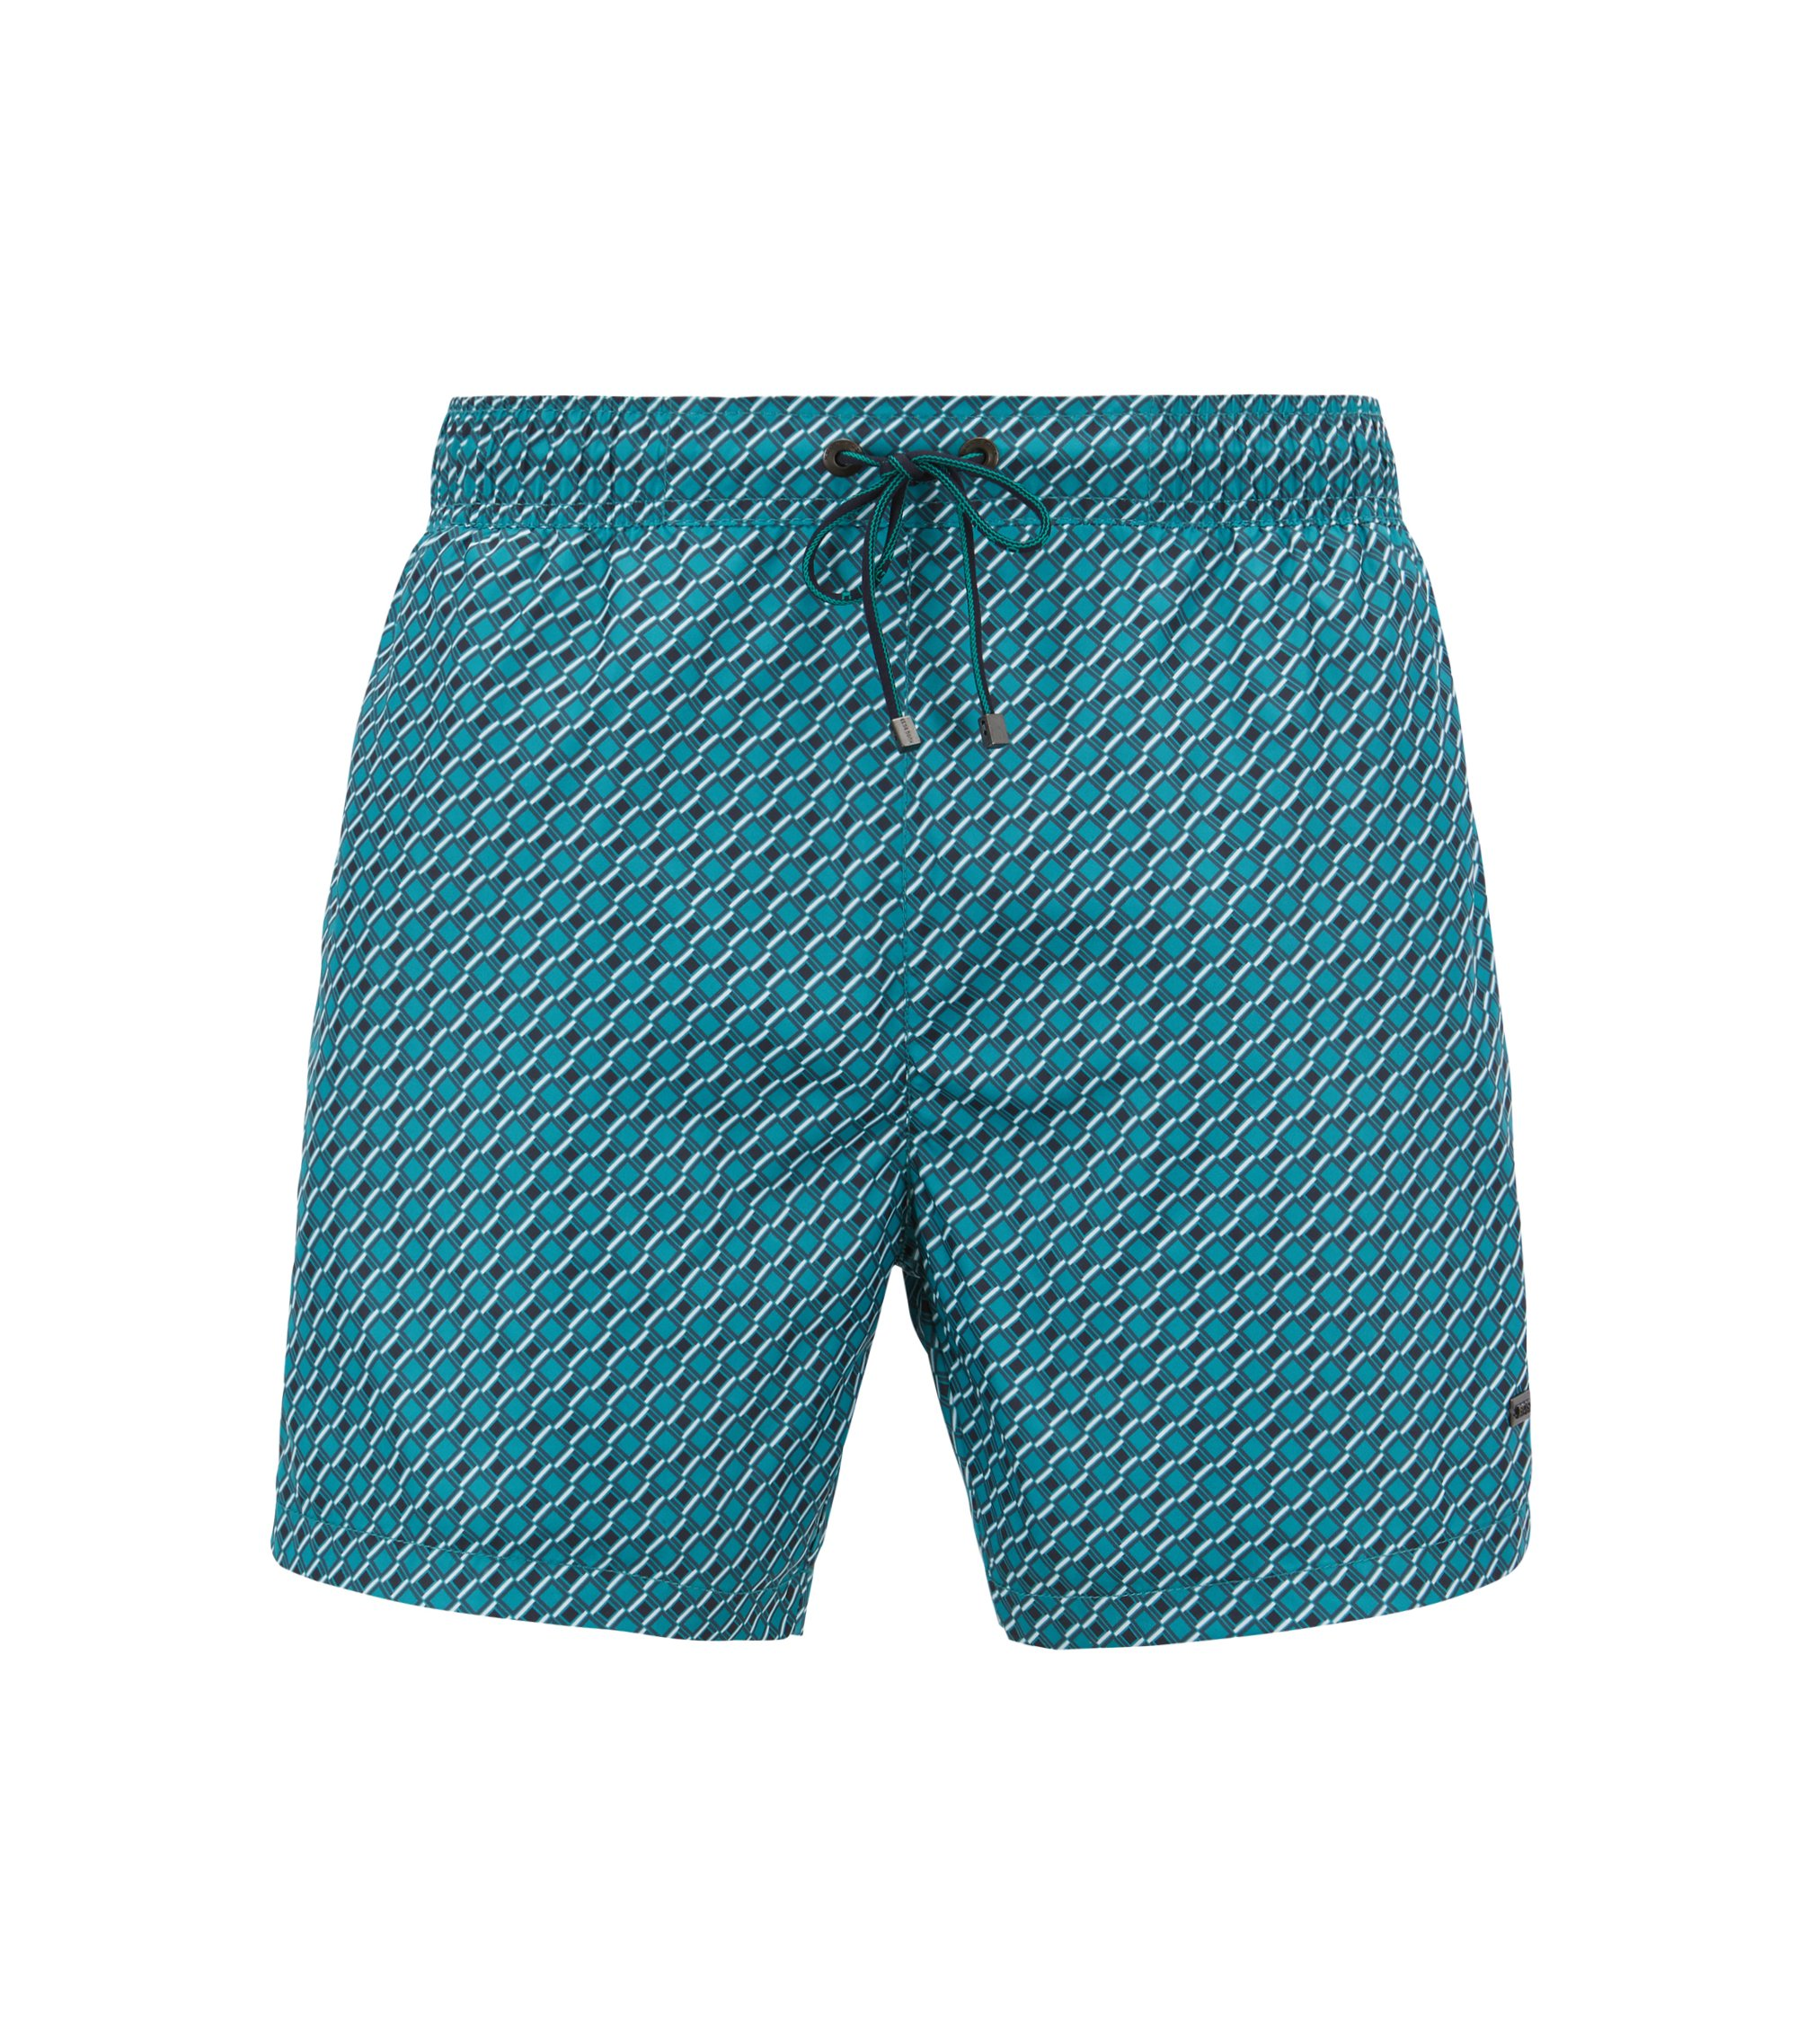 Lightweight patterned swim shorts with elasticated waistband, Green